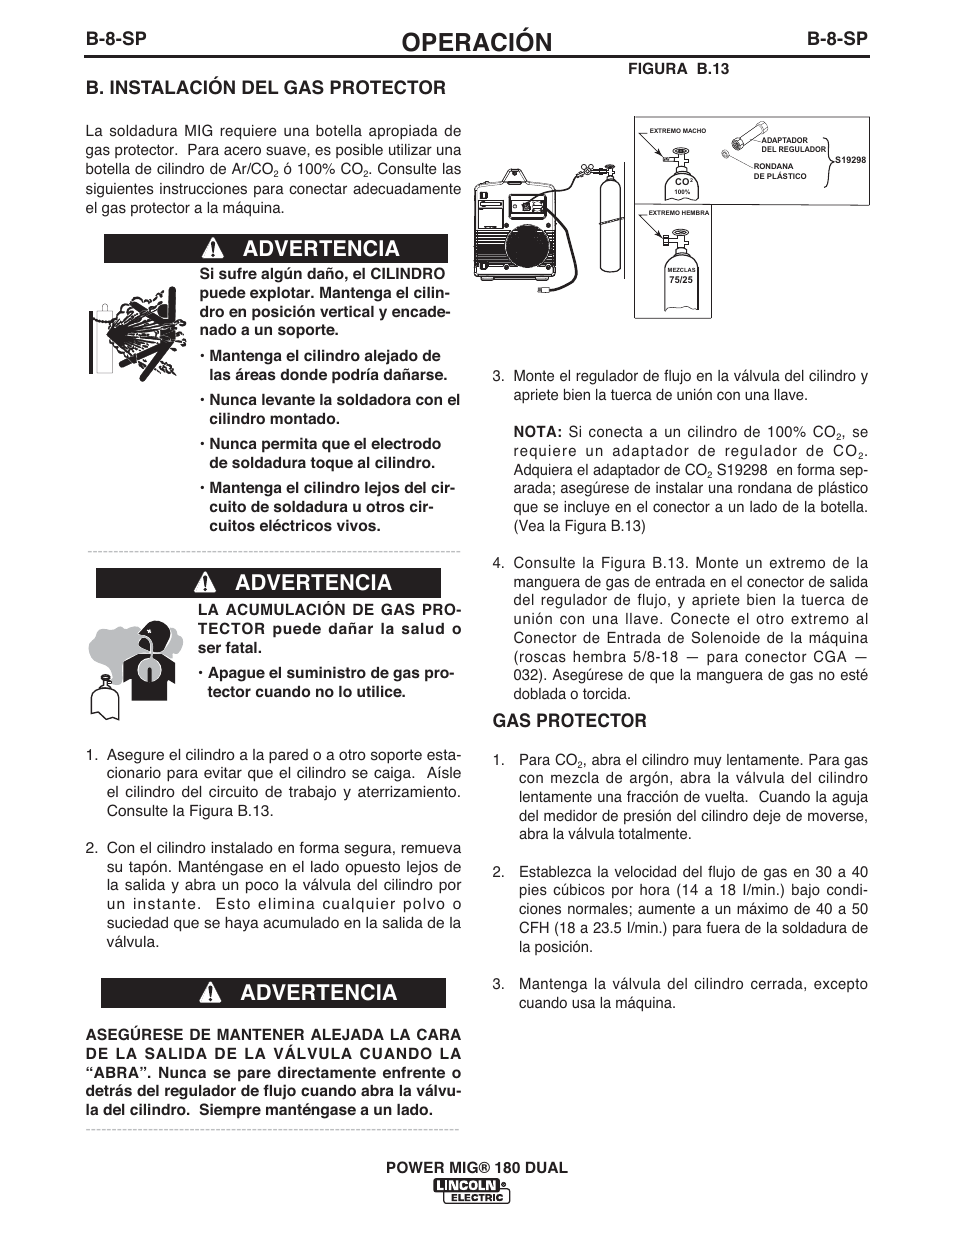 Operacion Advertencia B 8 Sp Lincoln Electric Imt10106 Power Mig 180 Dual User Manual Page 46 92